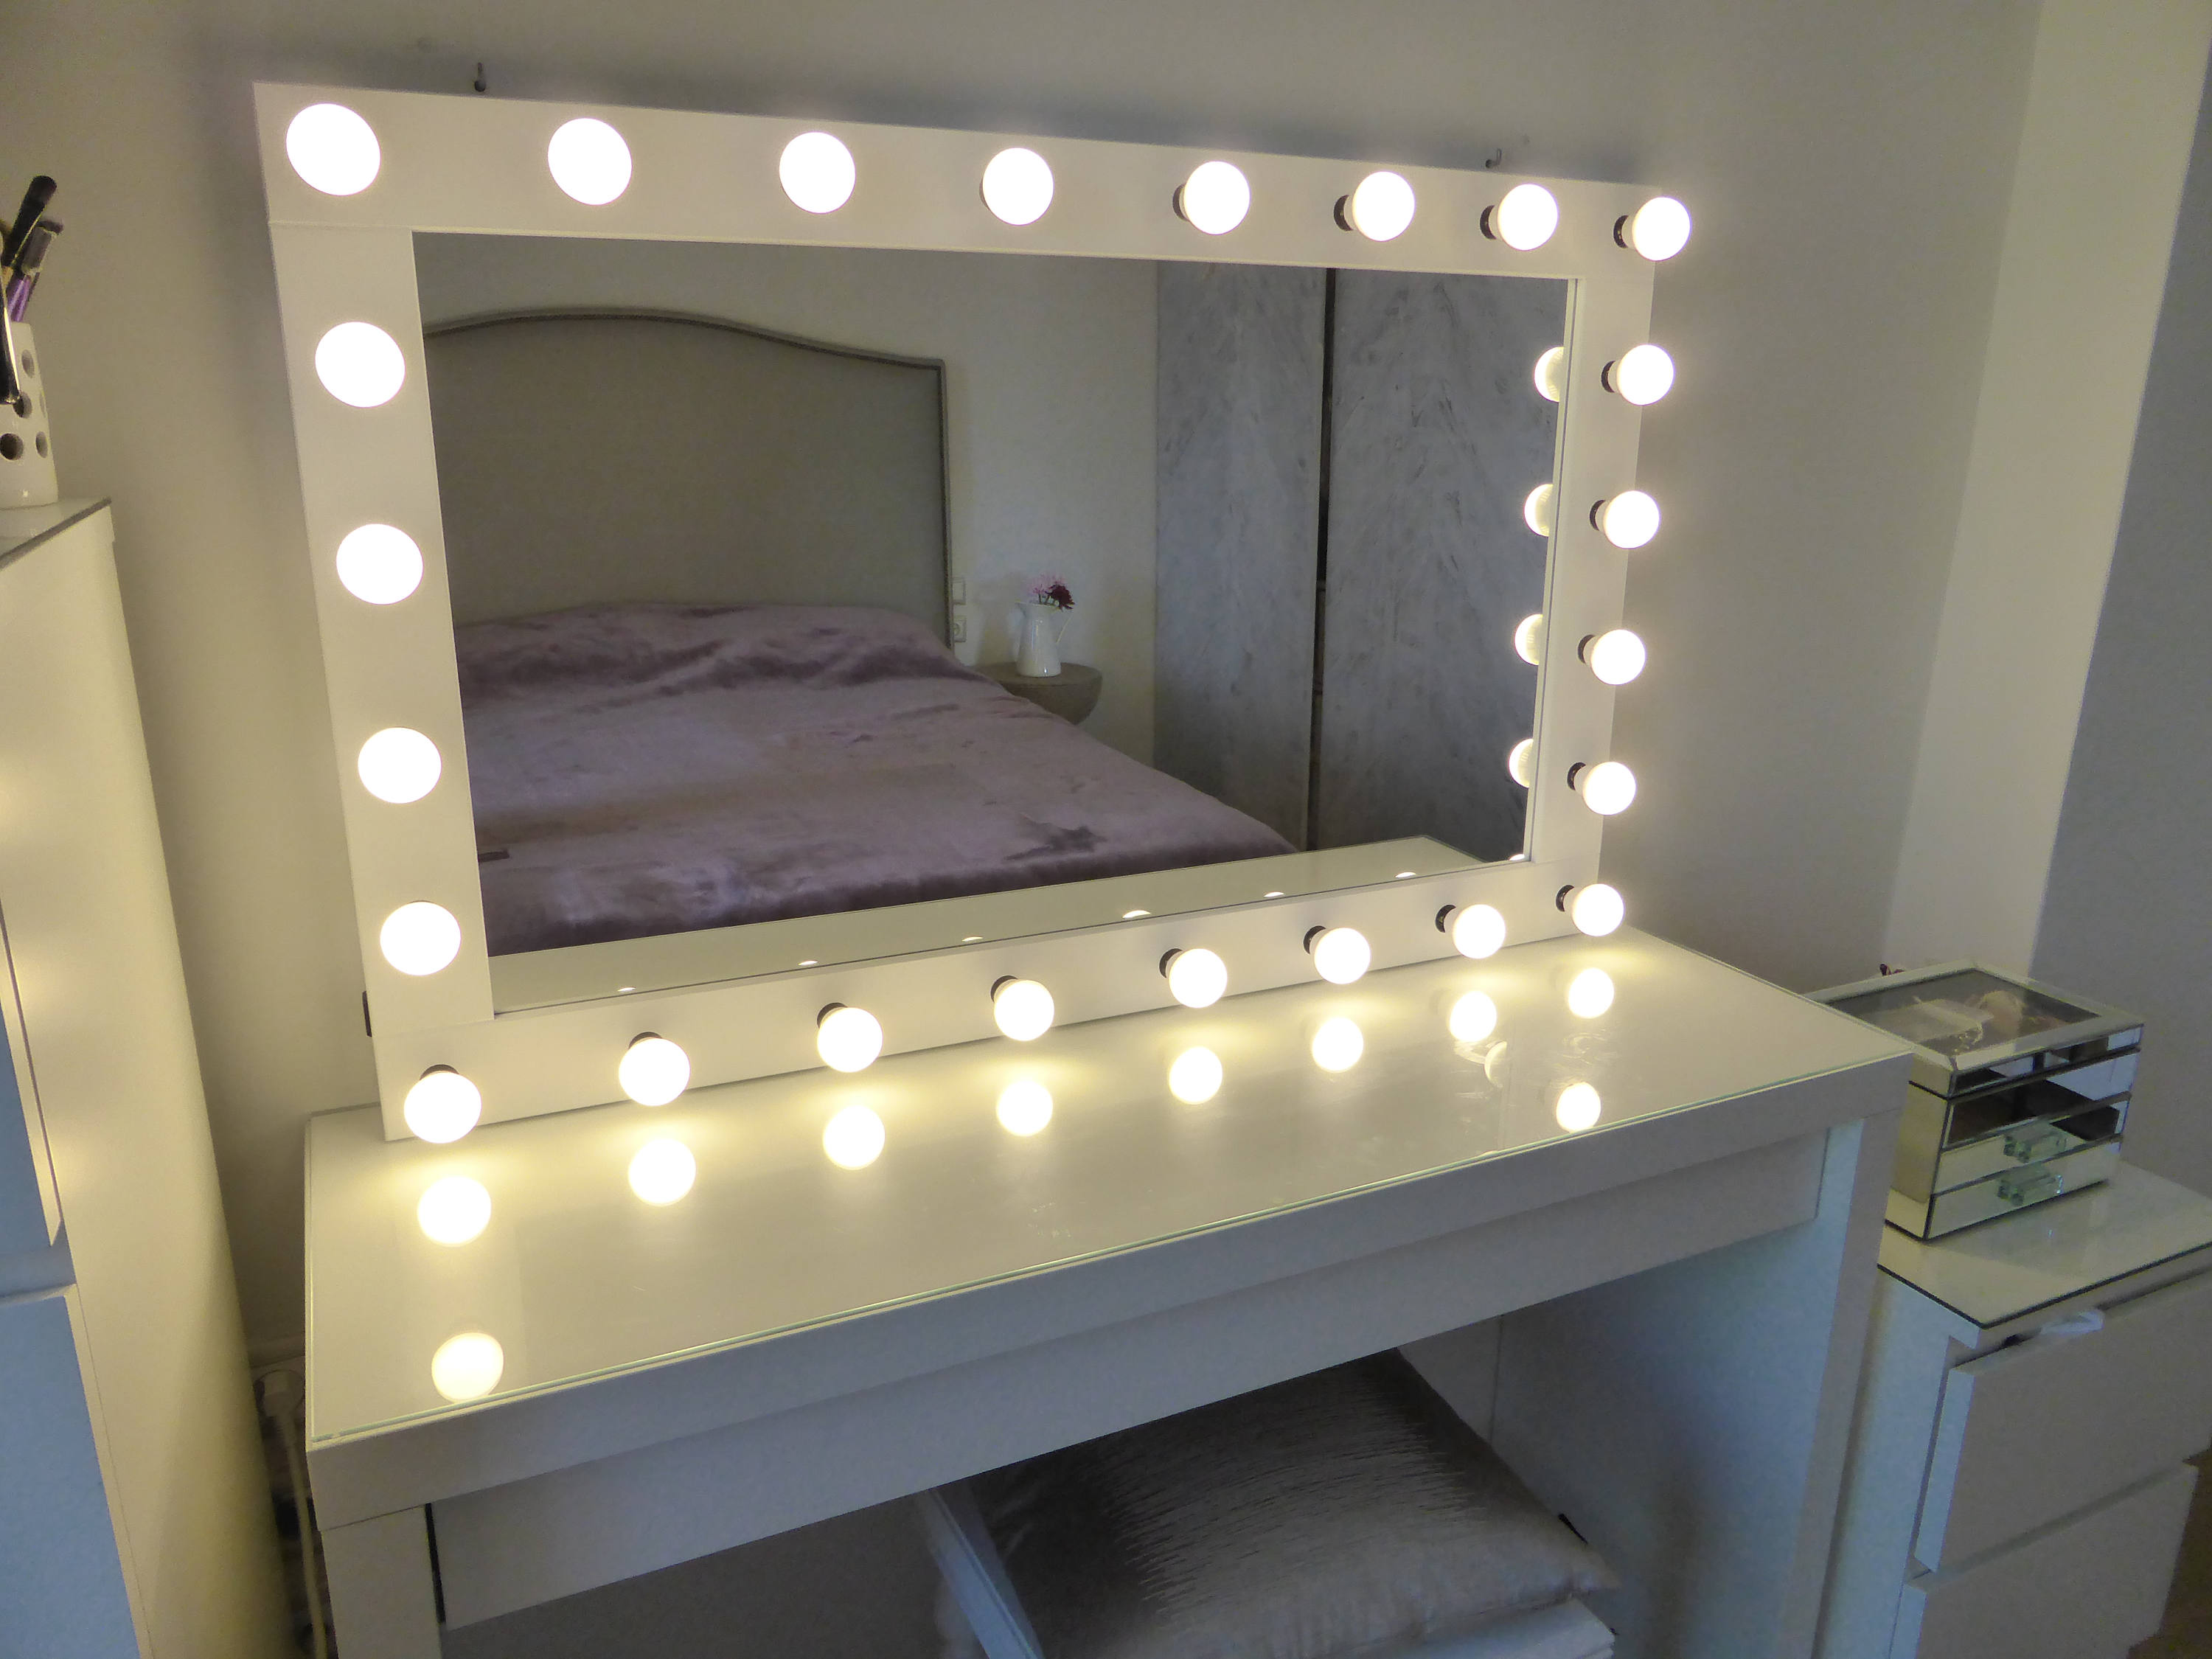 Hollywood Vanity Mirror with Lights | Vanity Makeup Mirrors with Lights | Hollywood Style Makeup Vanity